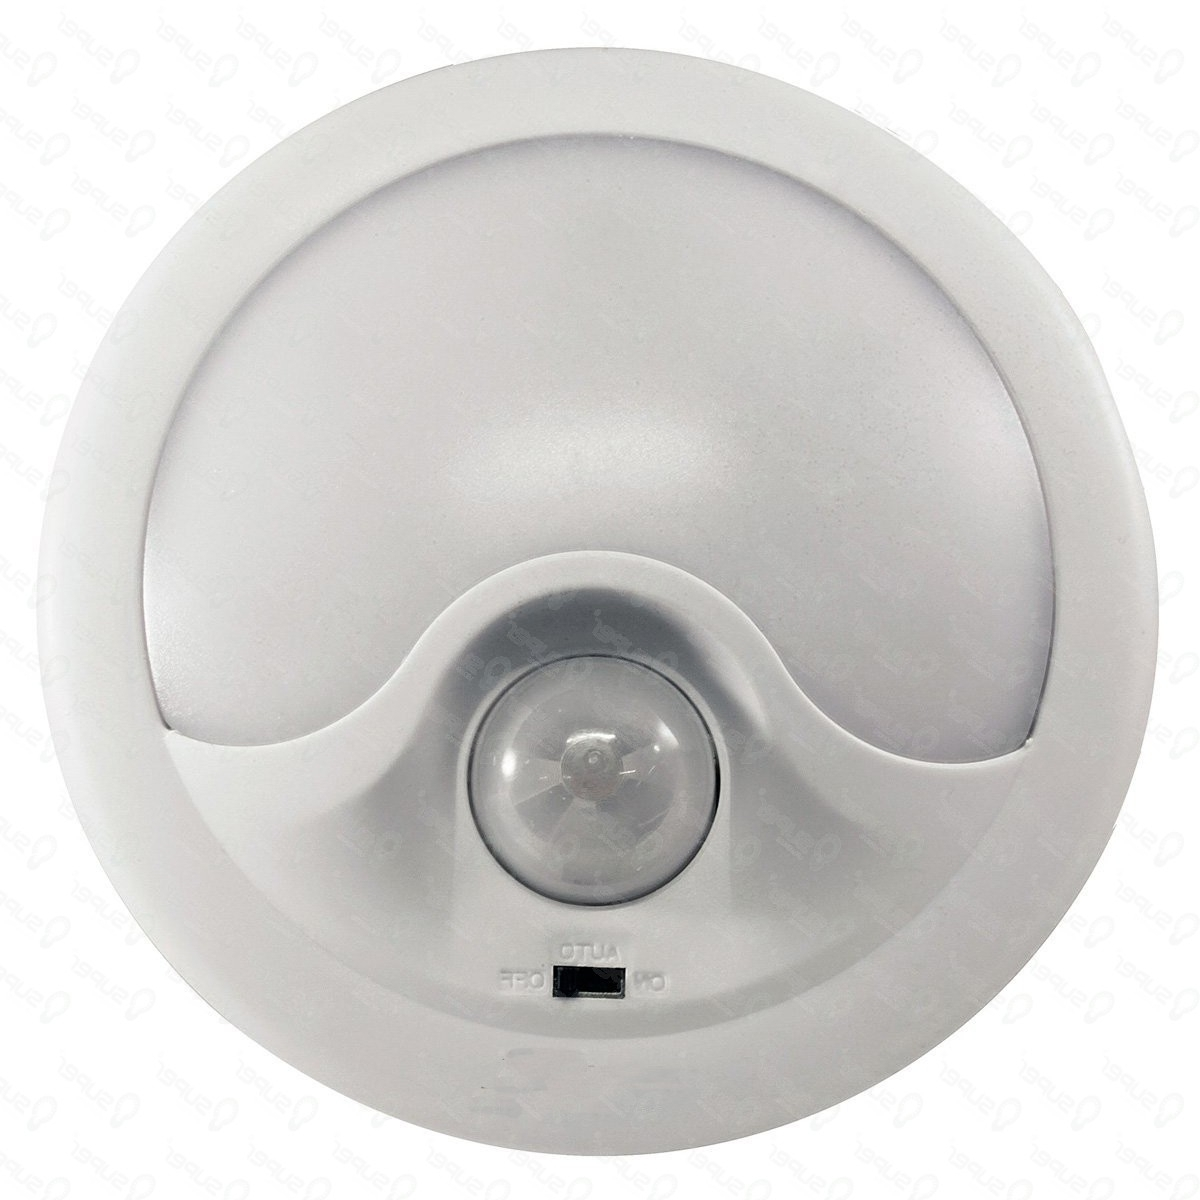 Motion Sensor Ceiling Light Fixture Amazing Outdoor Ceiling Fan With Throughout Popular Outdoor Ceiling Fans With Motion Sensor Light (View 7 of 20)